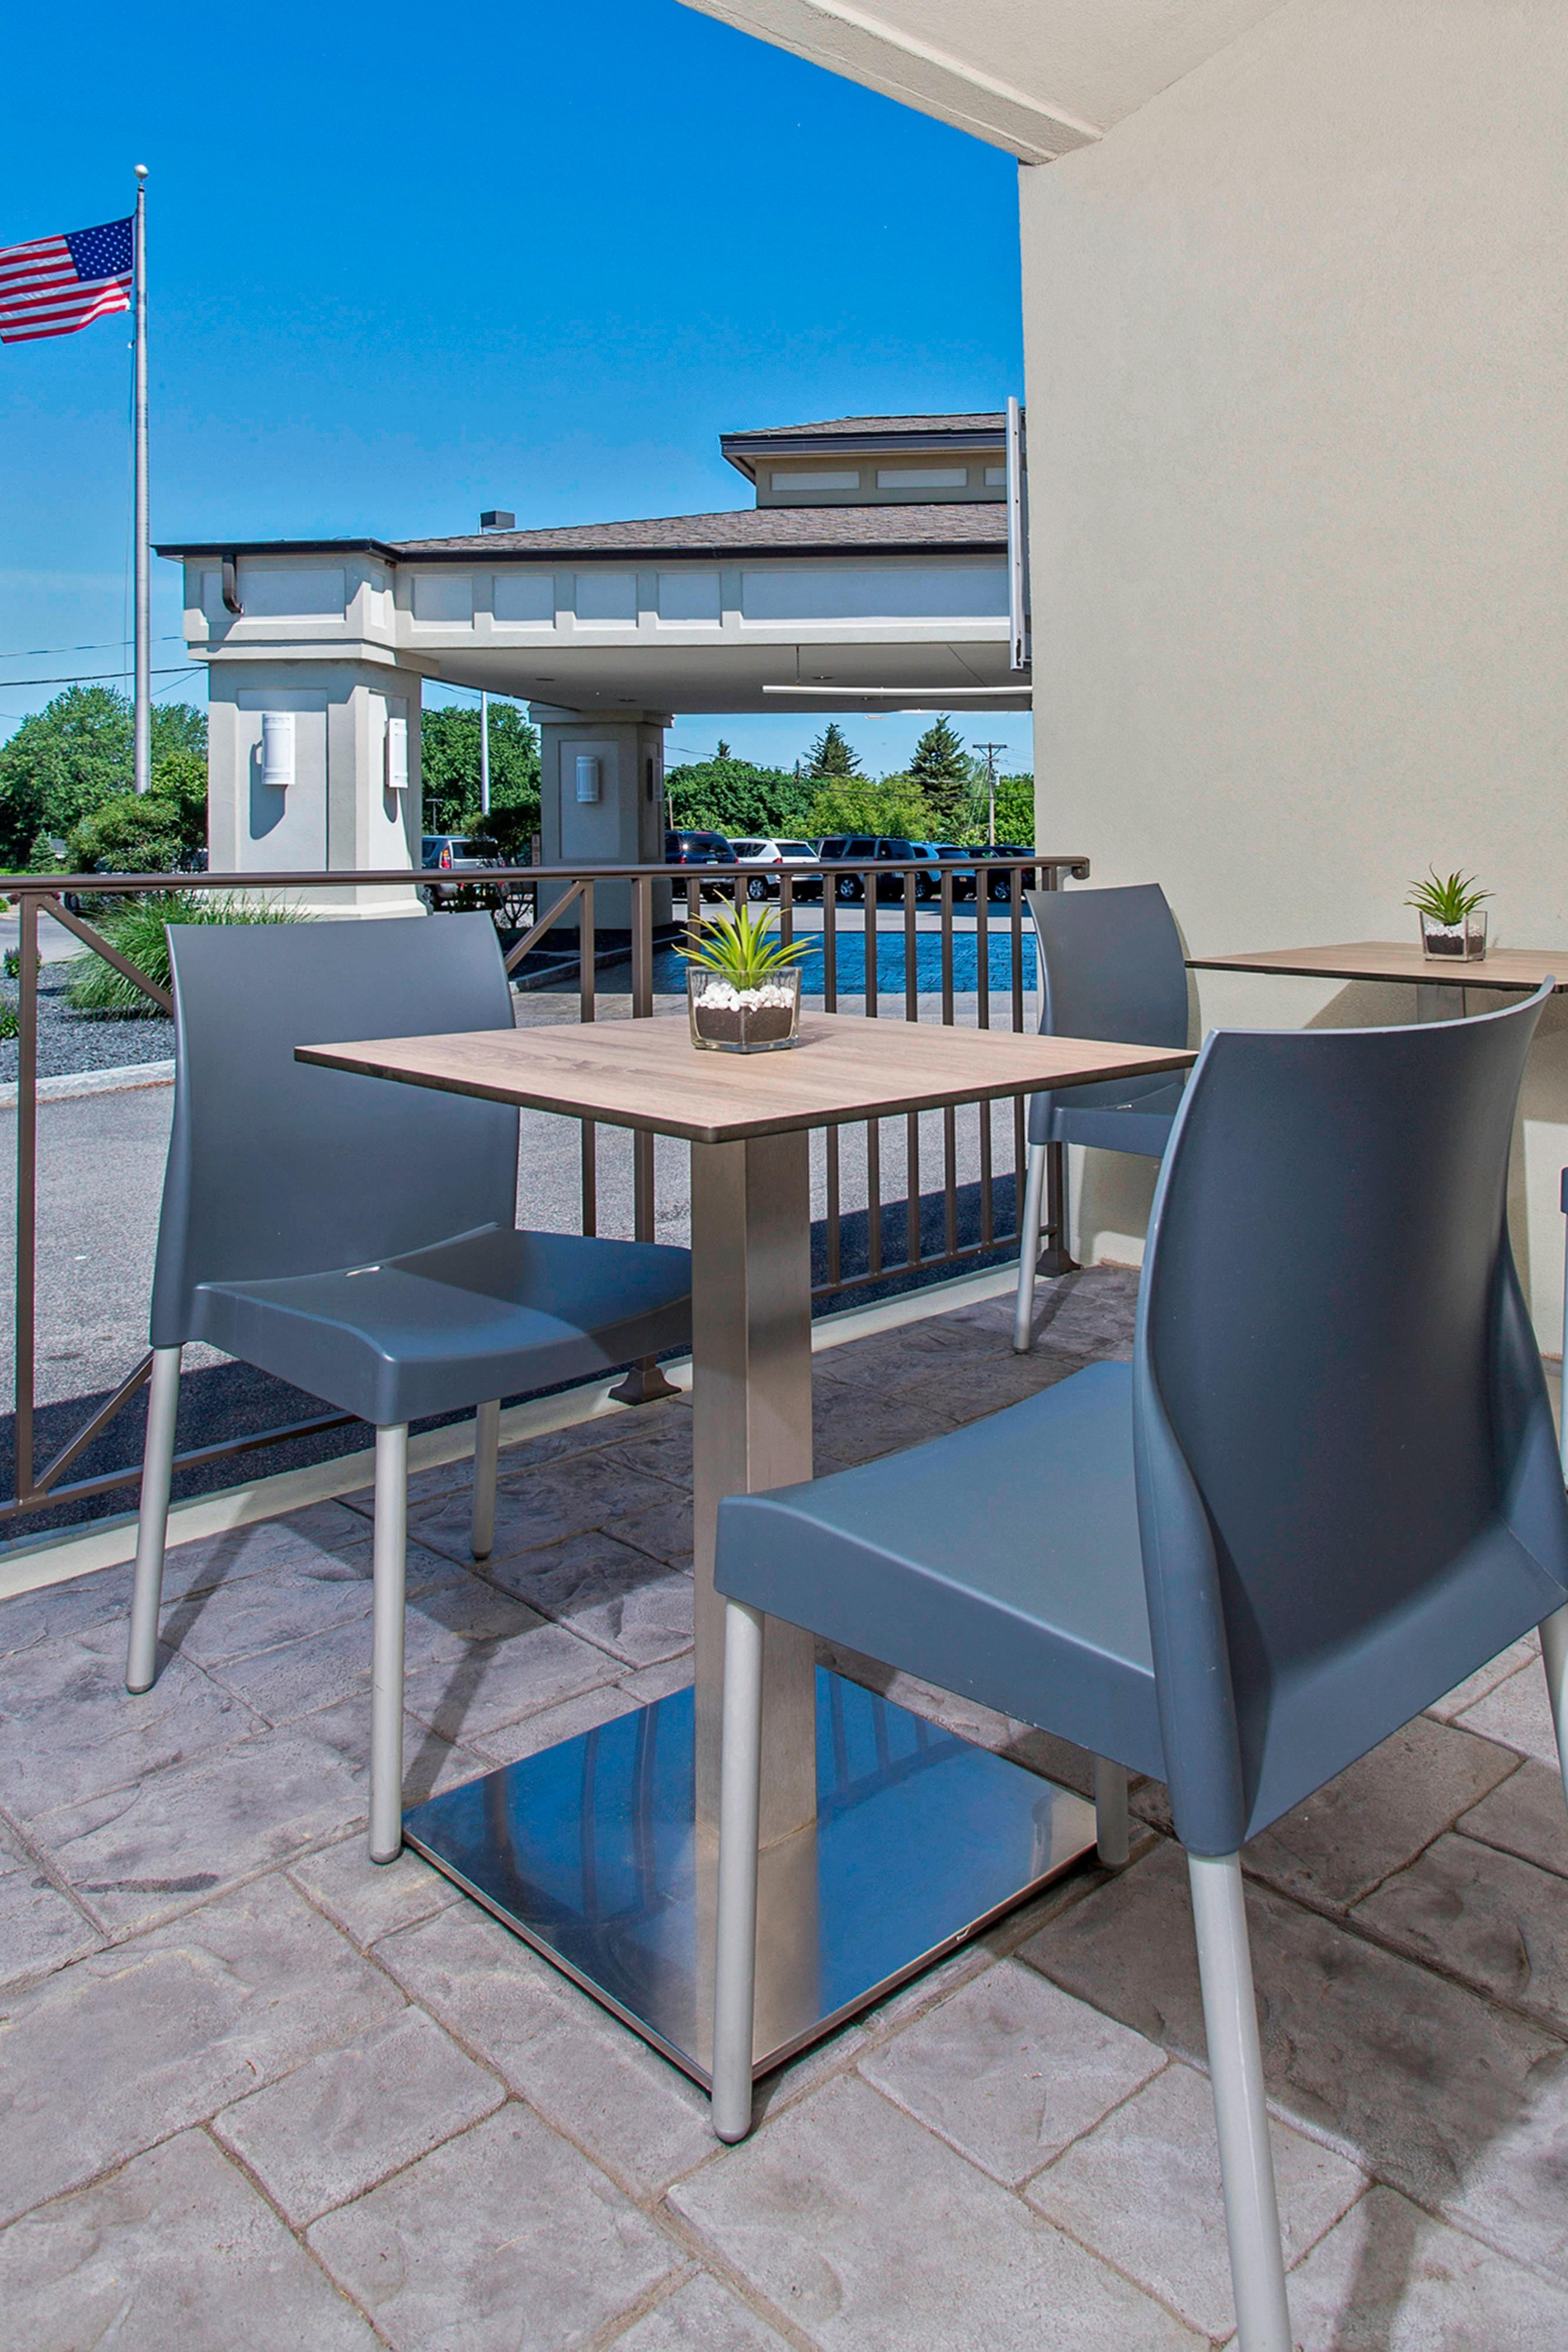 Outdoor Seating at Images Restaurant